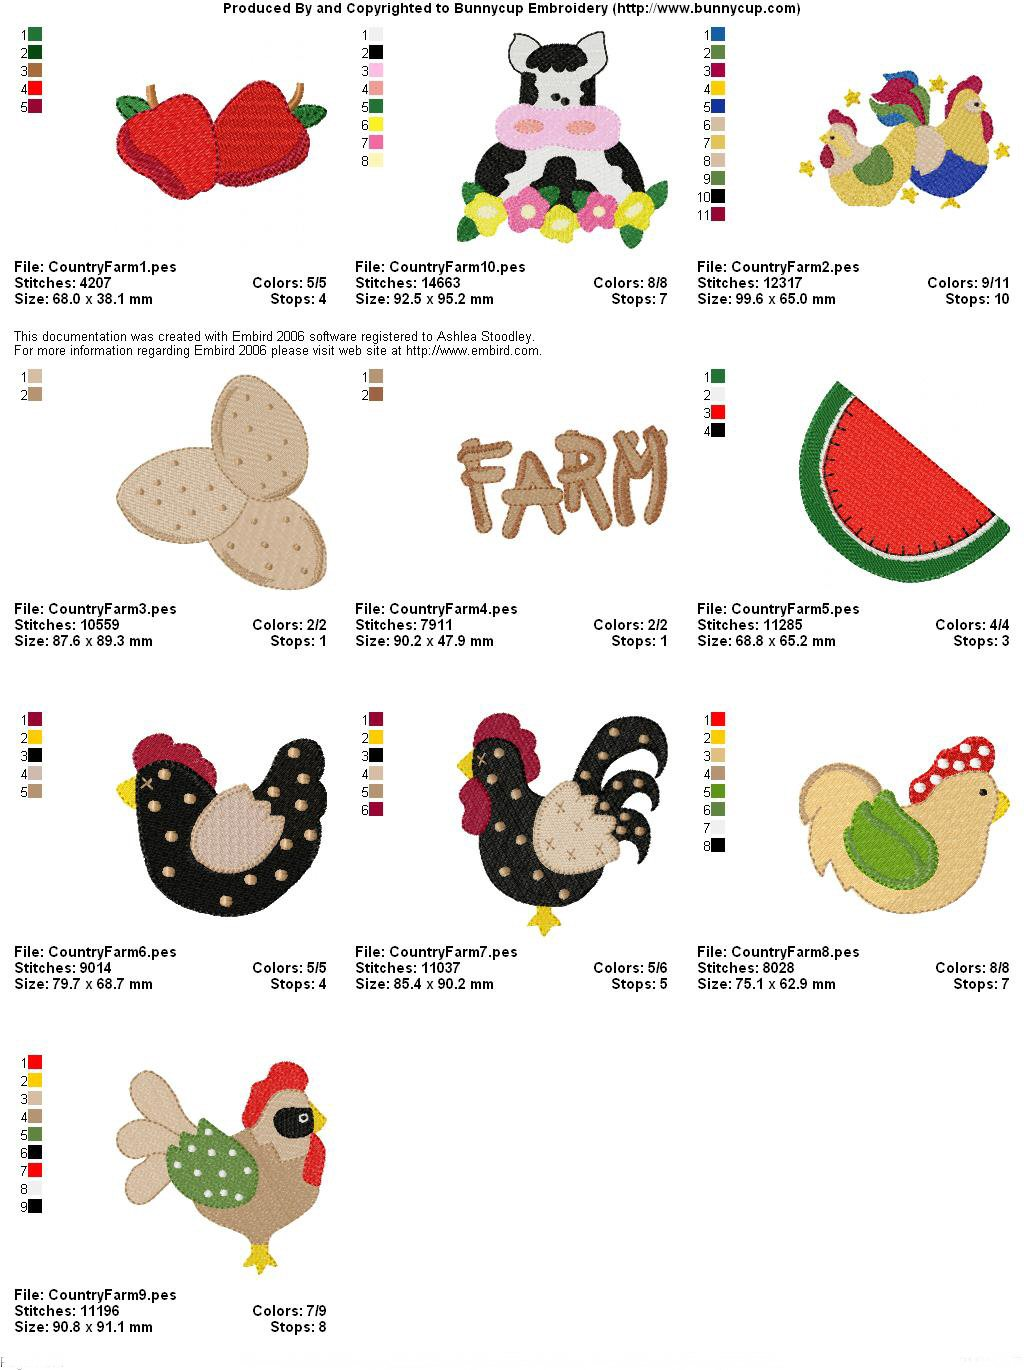 Country farm embroidery designs bunnycup embroidery thread chart 1 nvjuhfo Gallery